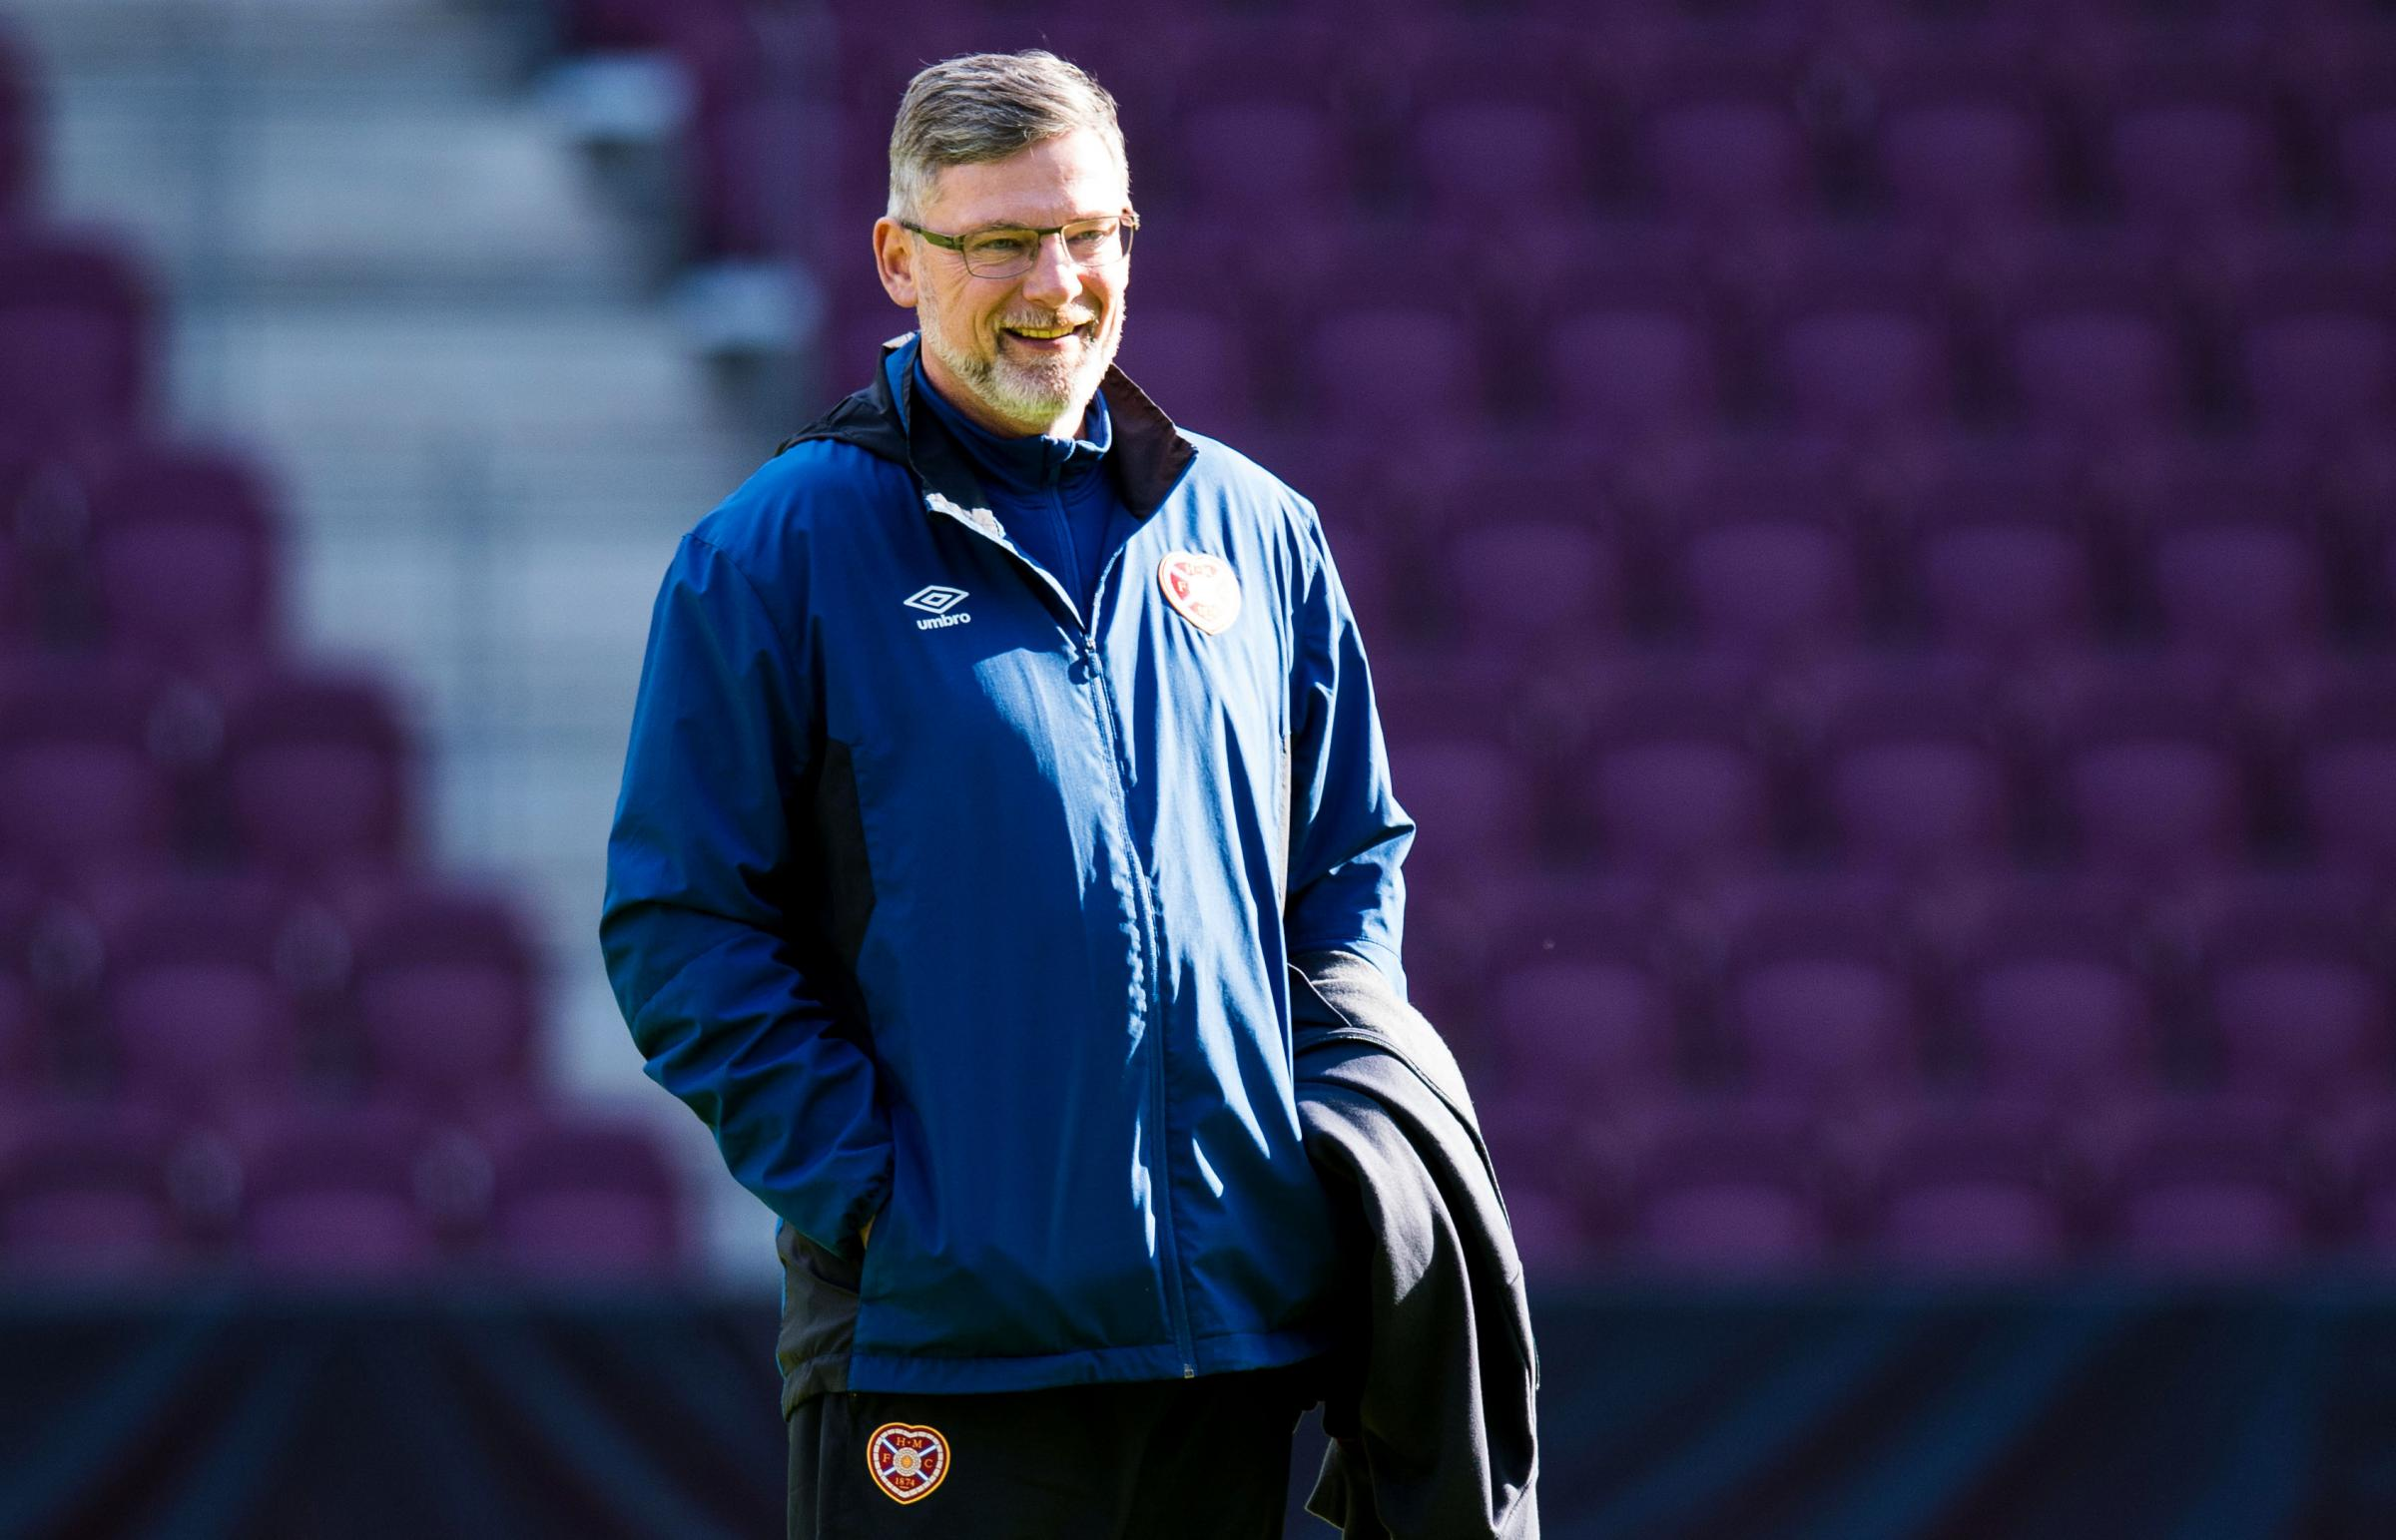 08/03/18 . HEARTS TRAINING. TYNECASTLE PARK - EDINBURGH. Hearts Manager Craig Levein..